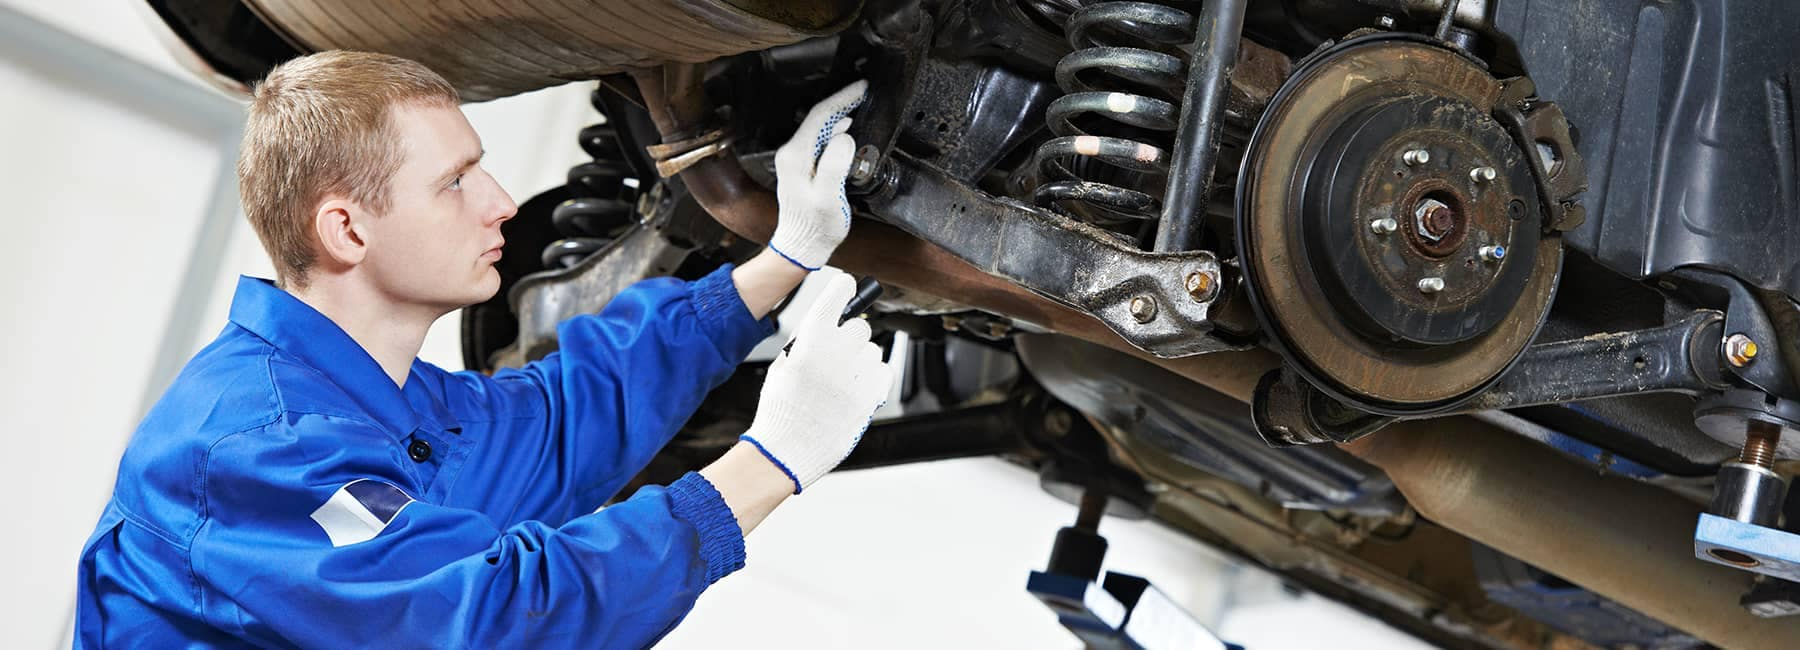 gloved technician examines underside of car